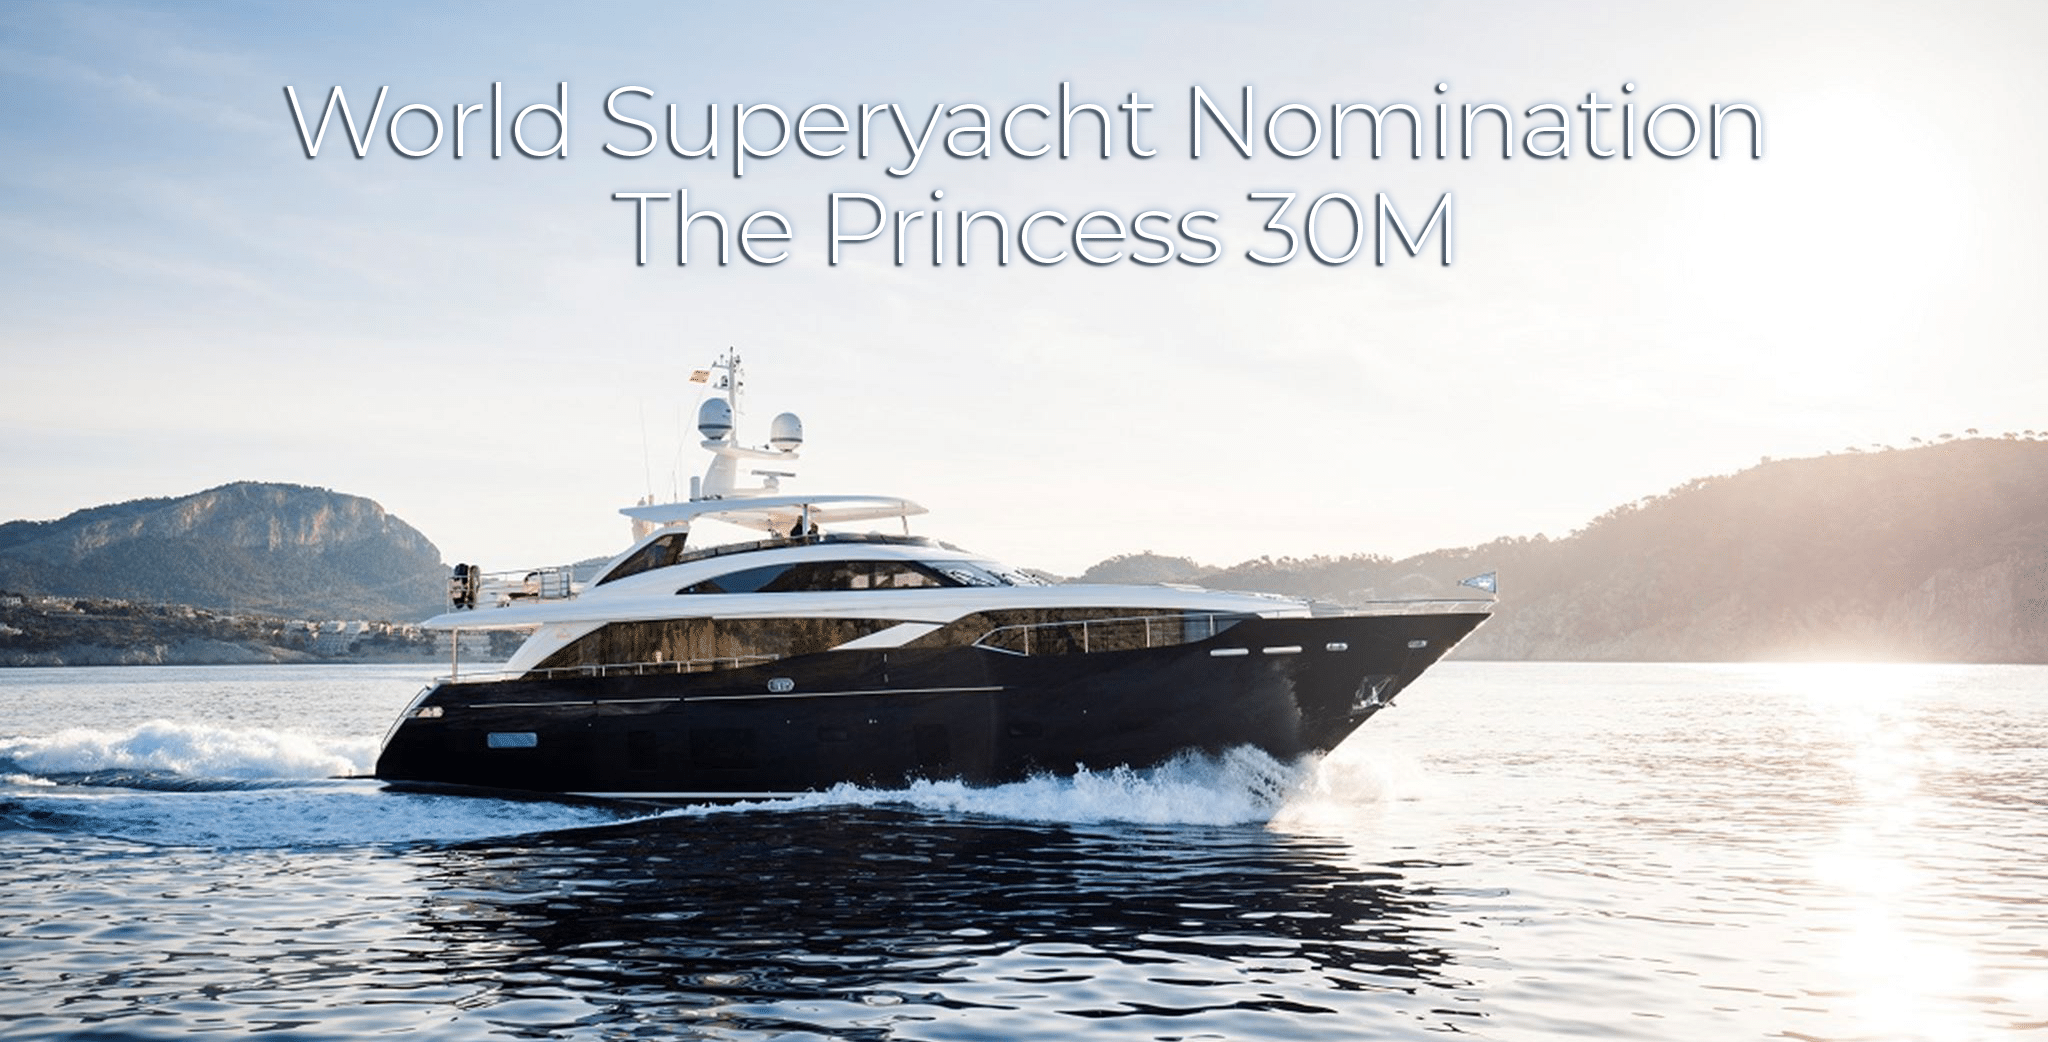 world superyacht nomination Princess 30M